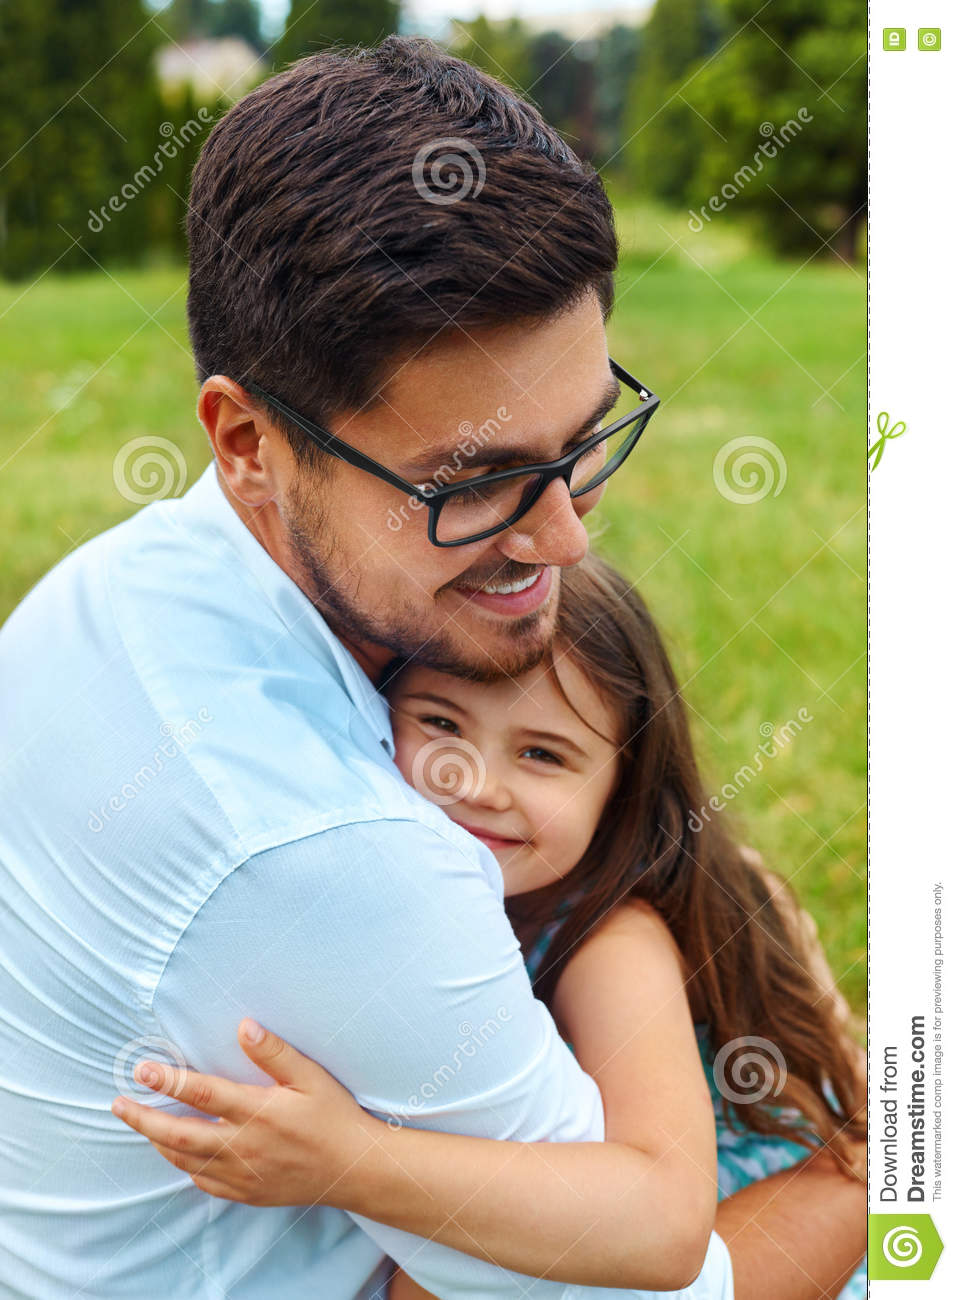 Father And Daughter Hugging In Park. Family Embracing Outdoors